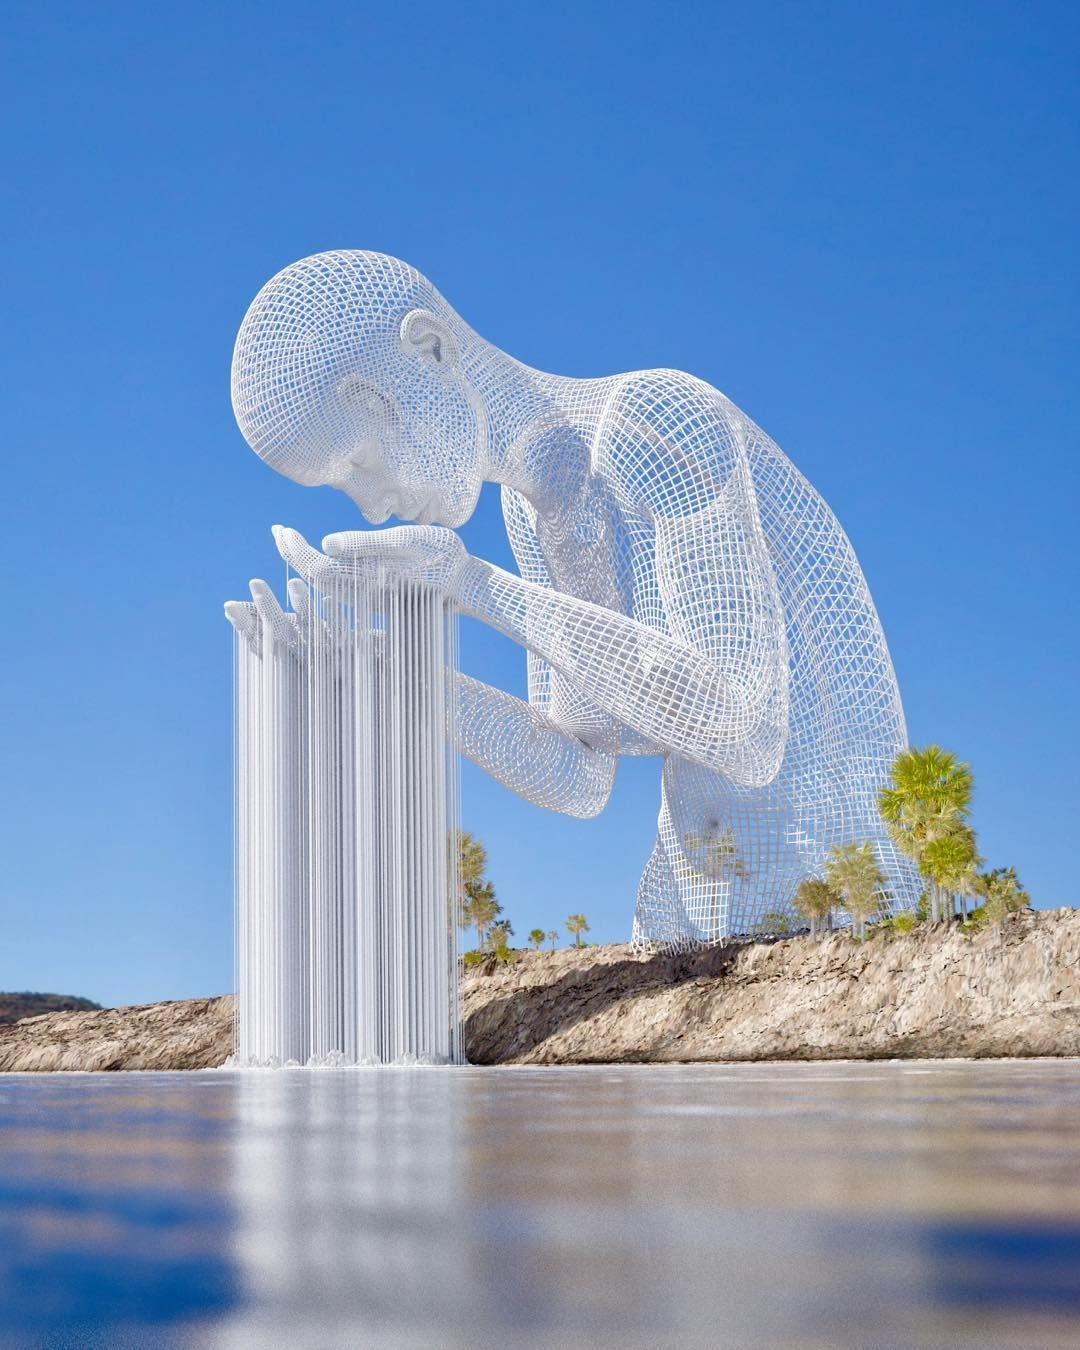 Chad Knight TuttArt